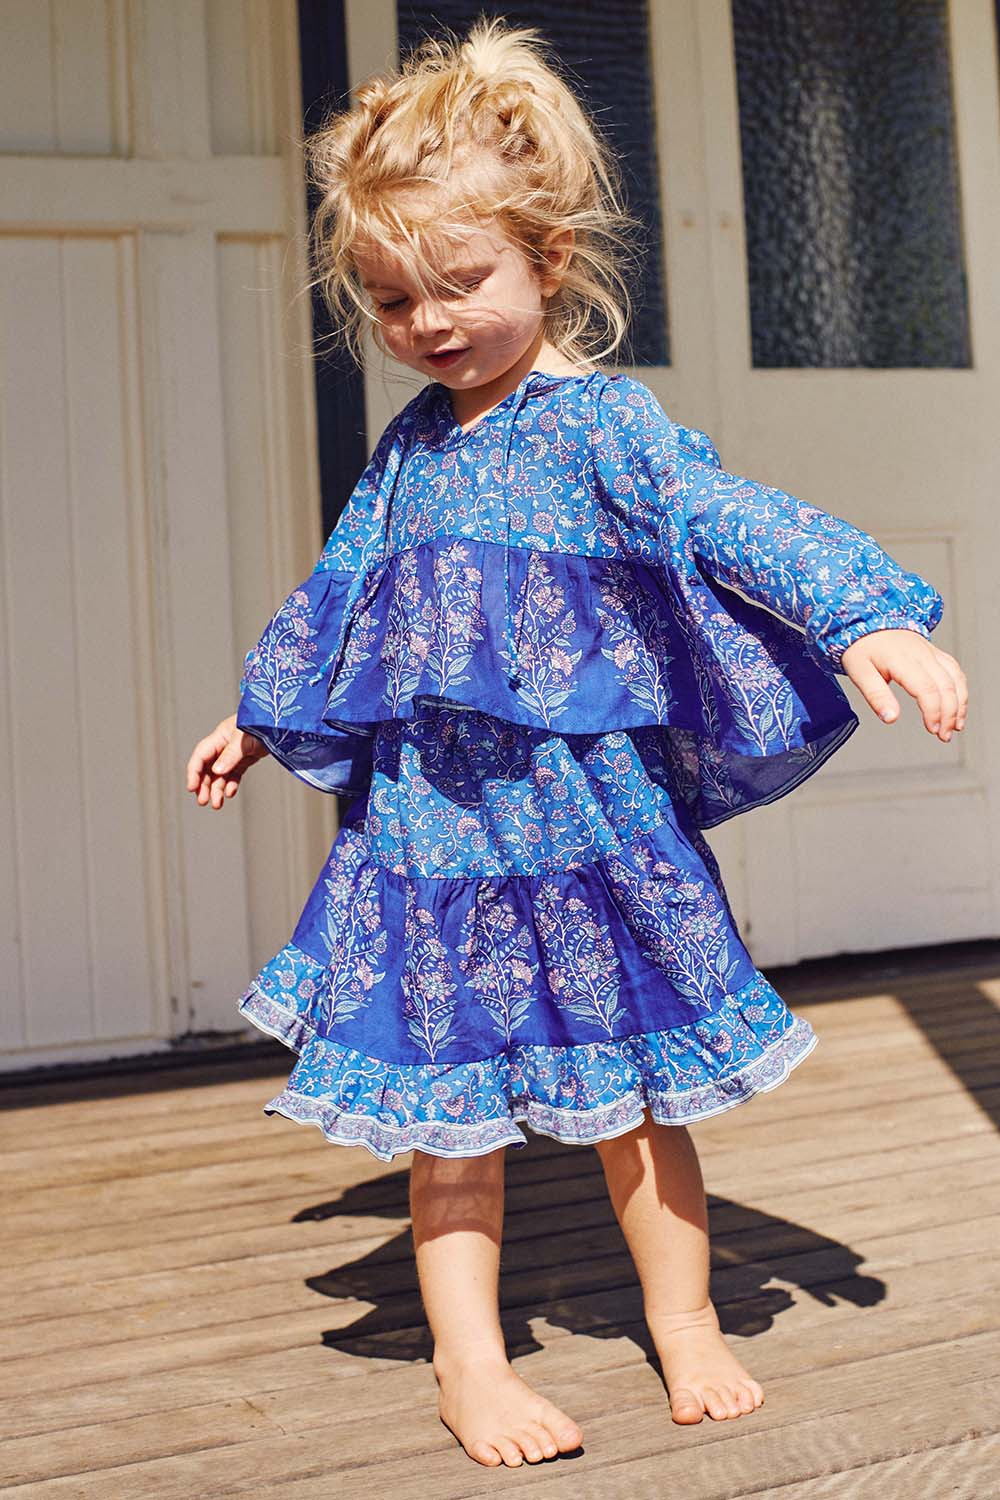 Wisteria Toddler Blouse in Moonlight Blue